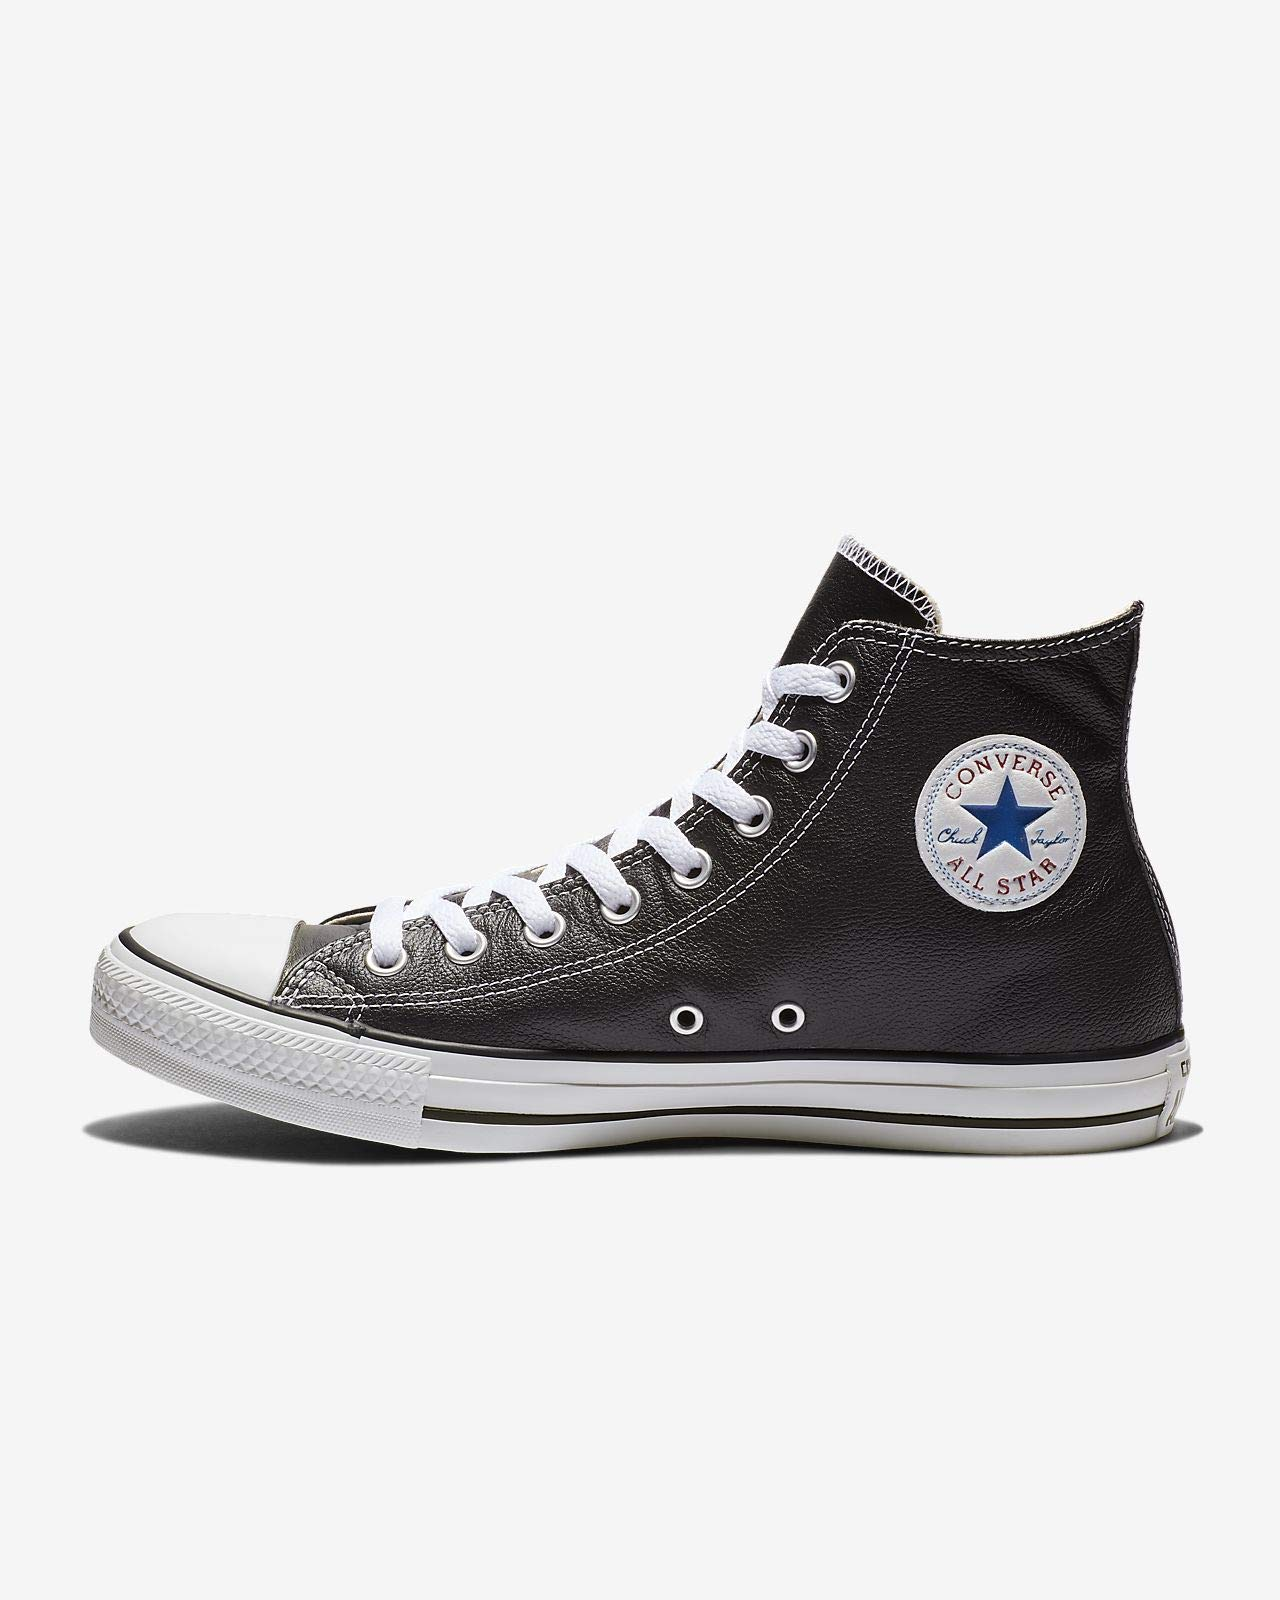 Converse Chuck Taylor All Star Leather Hi Shoes - Black - UK 10.5 / US Mens 10.5 / US Women 12.5 / EU 44.5 by Converse